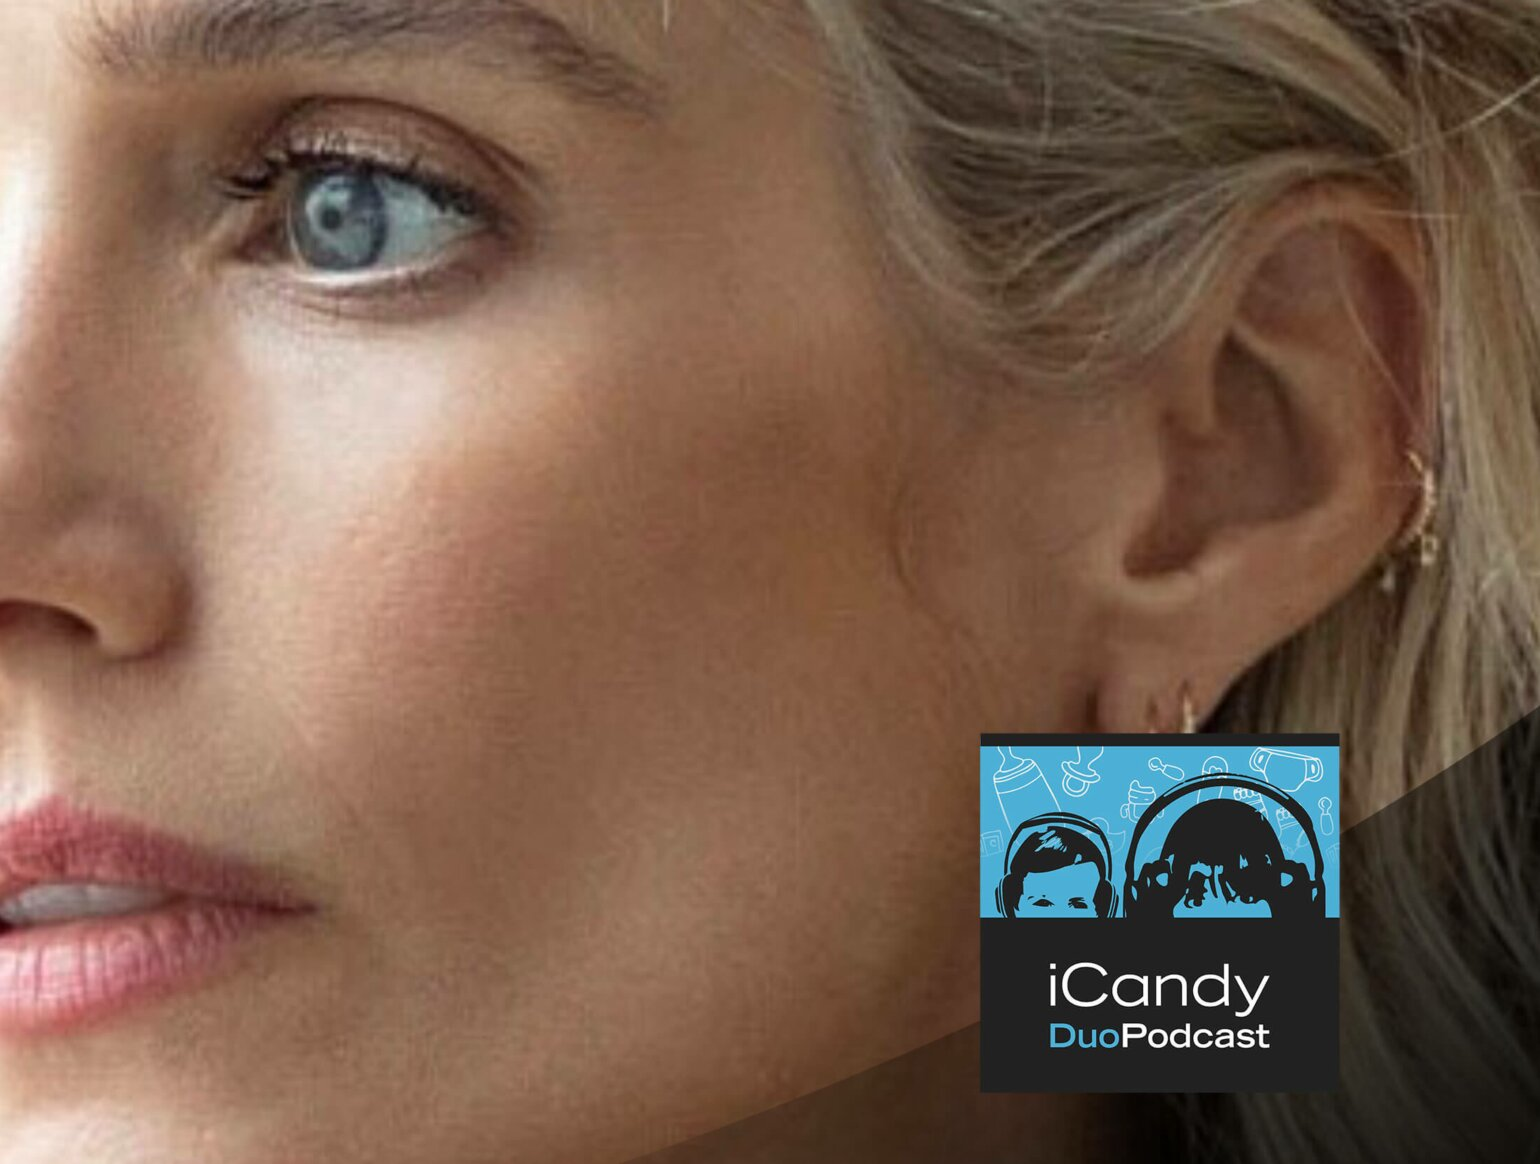 iCandy Duo Podcast - Lisa Dwan